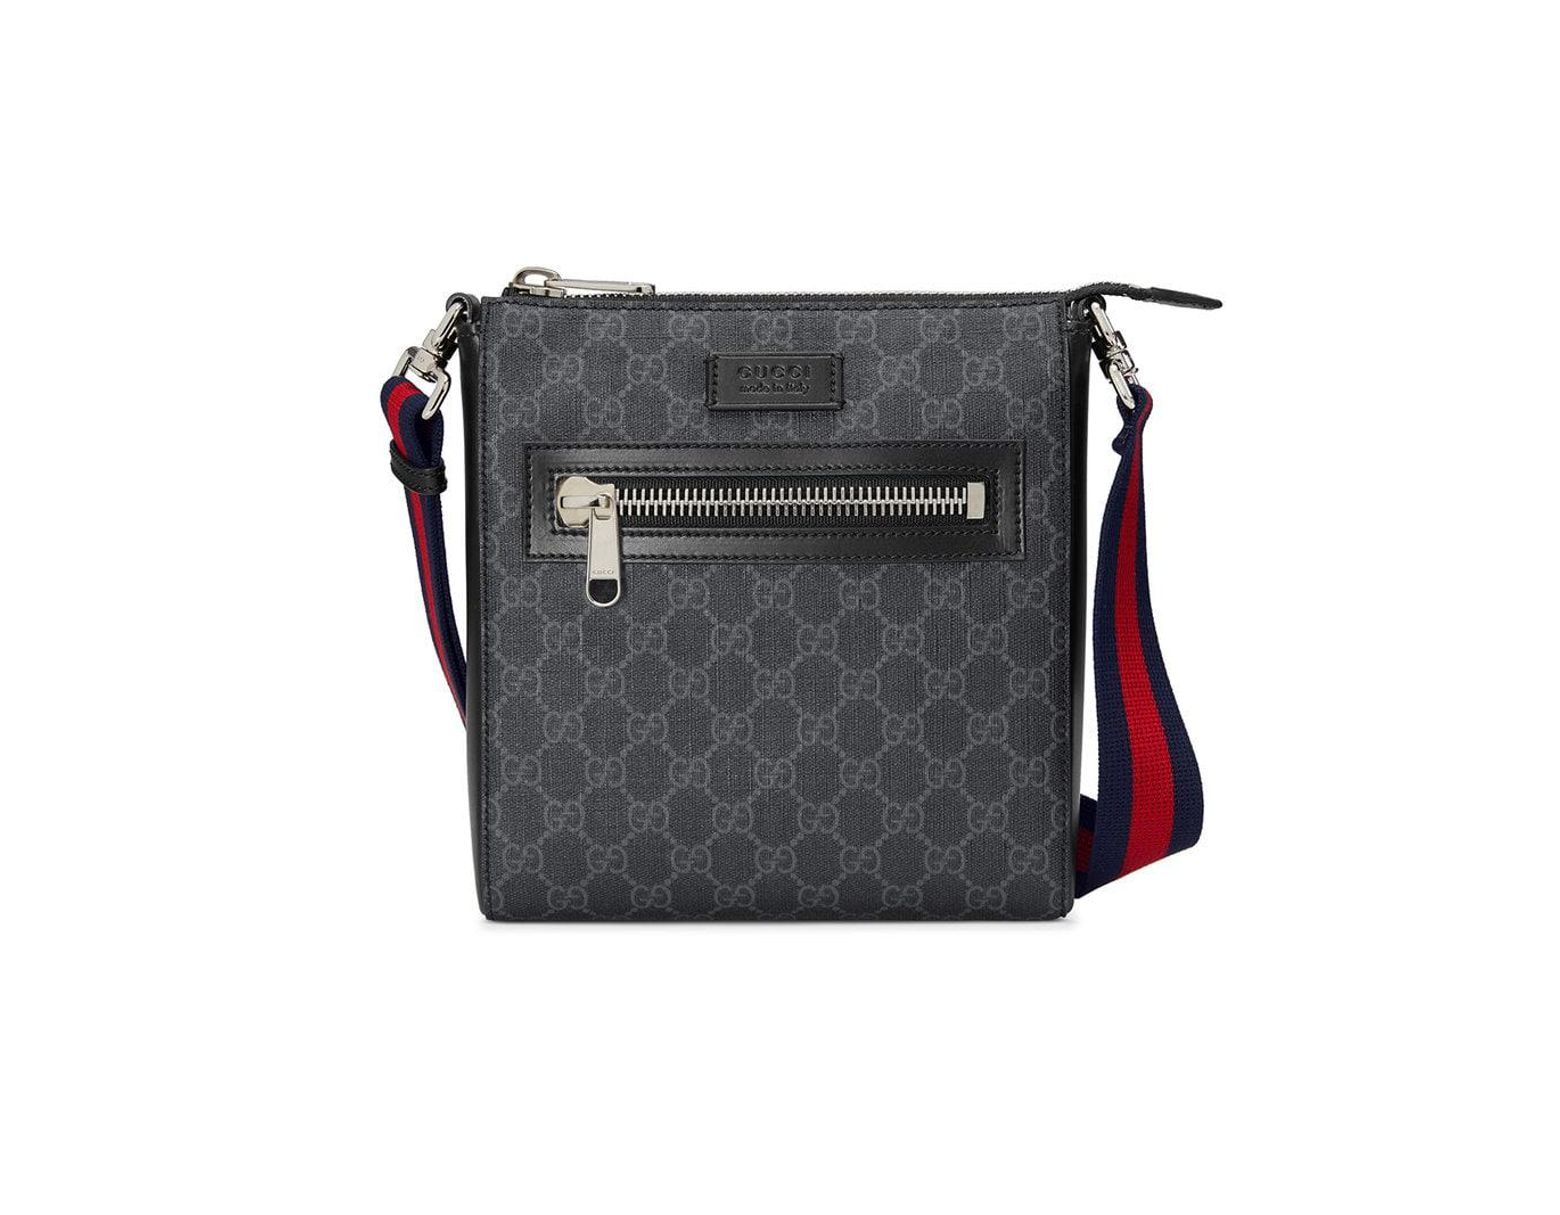 0d3d40a9ba7bab Gucci GG Supreme Small Messenger Bag in Black for Men - Save 15% - Lyst